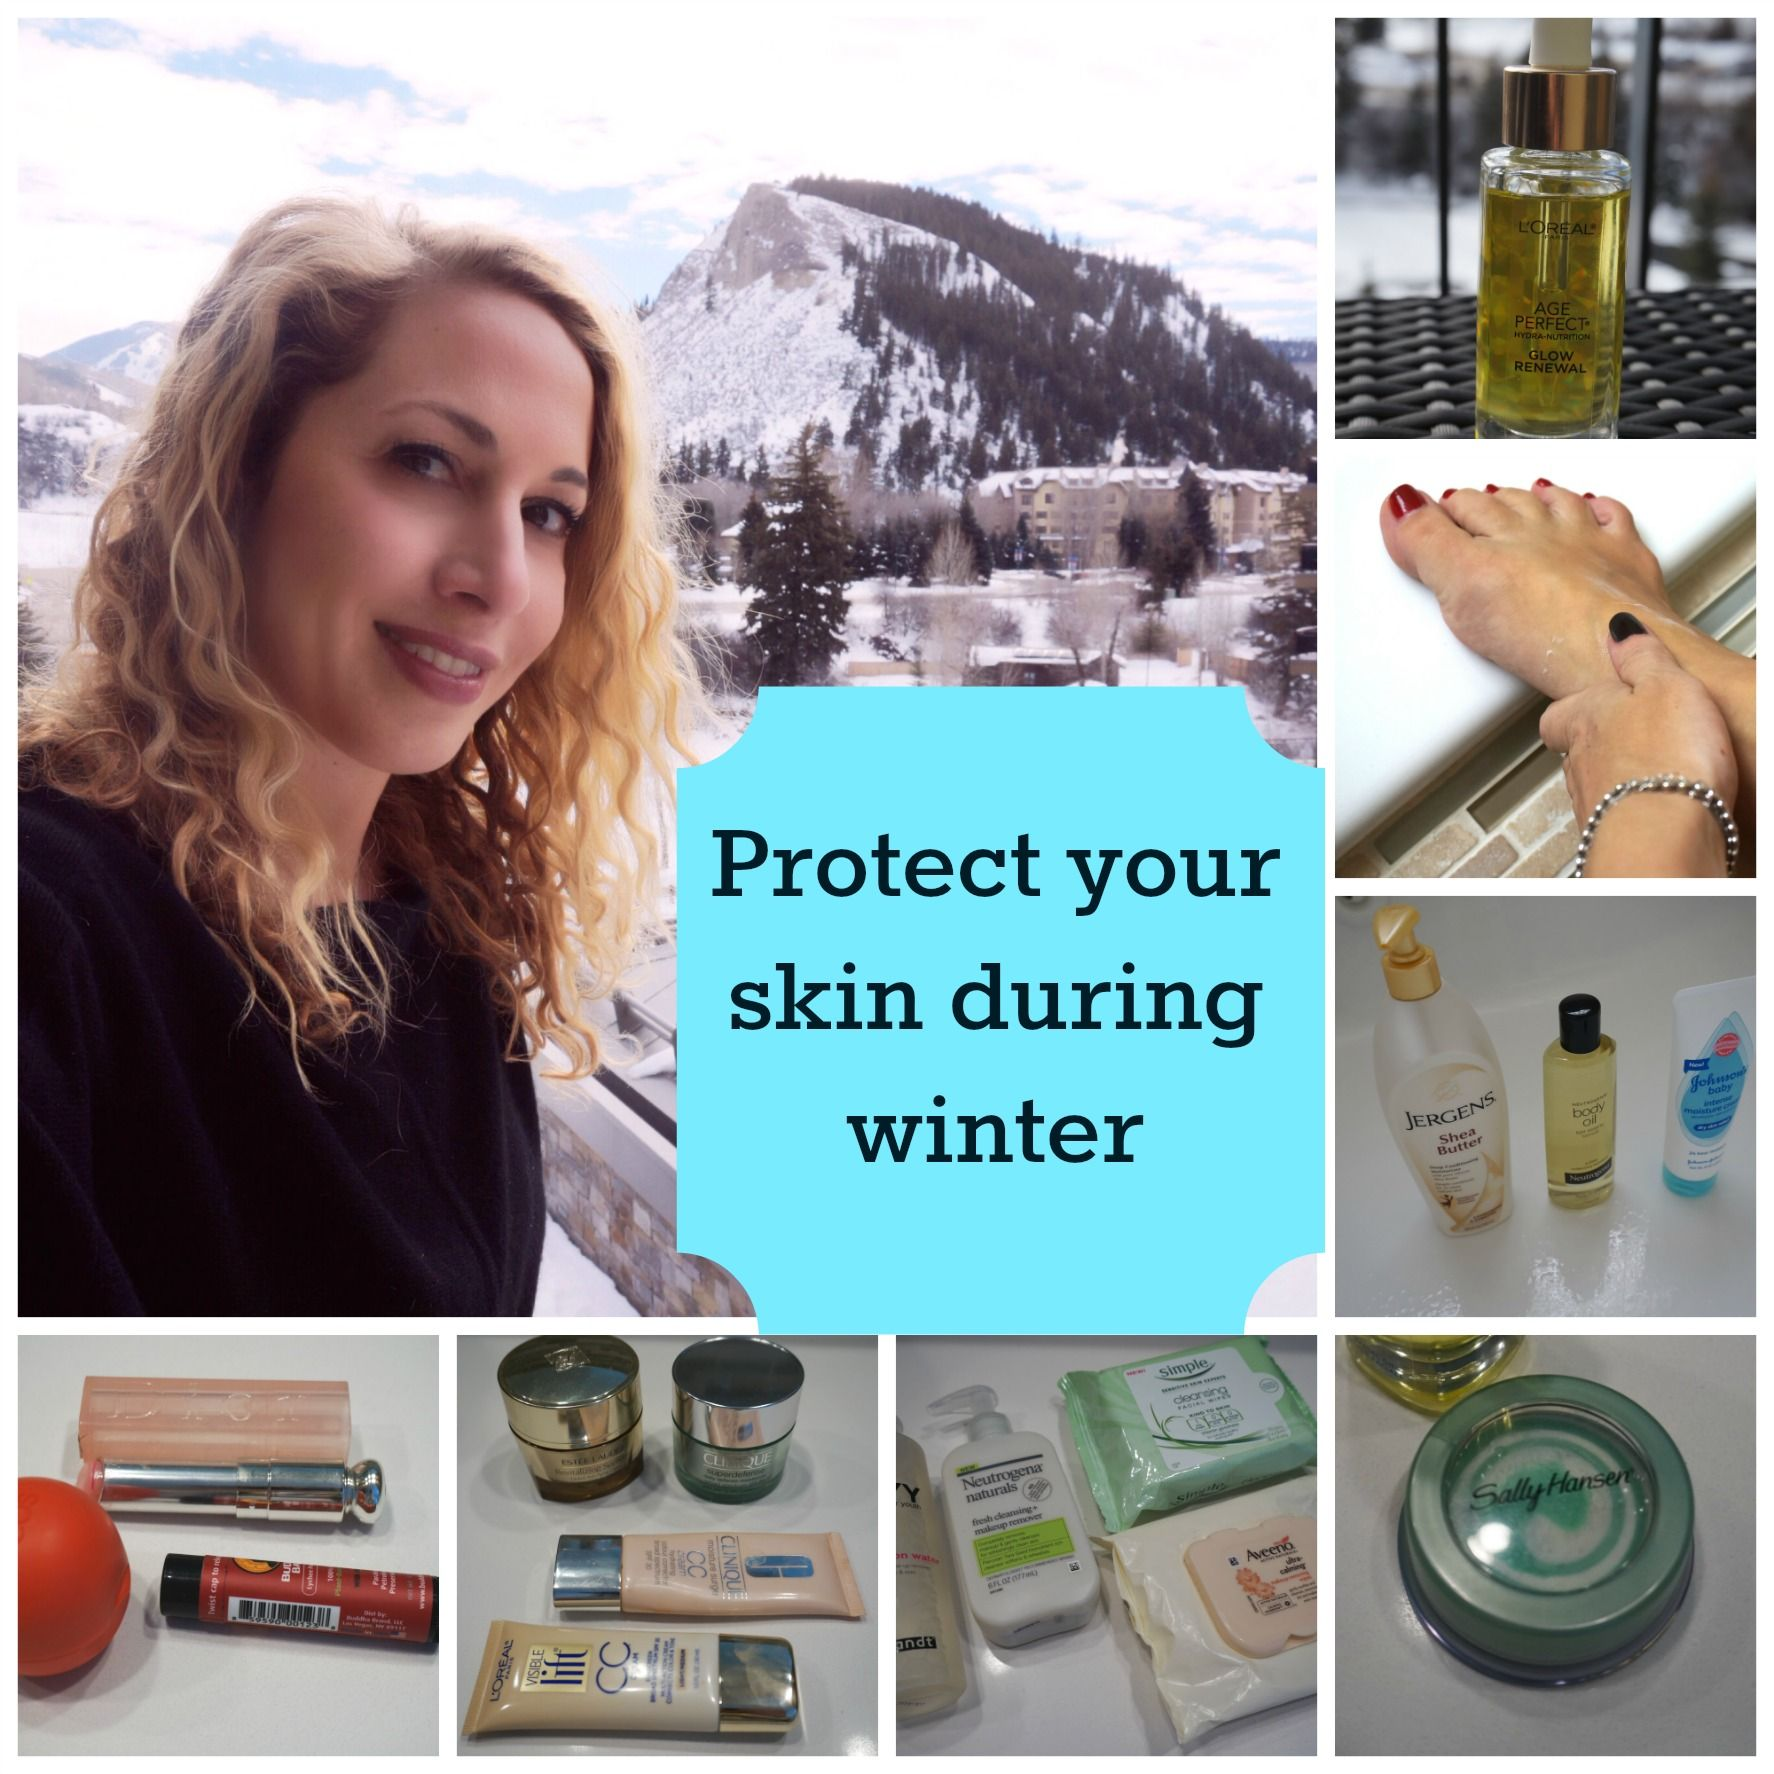 8 Tried and True Tips for Winter-Proofing Your Skin - on Babble